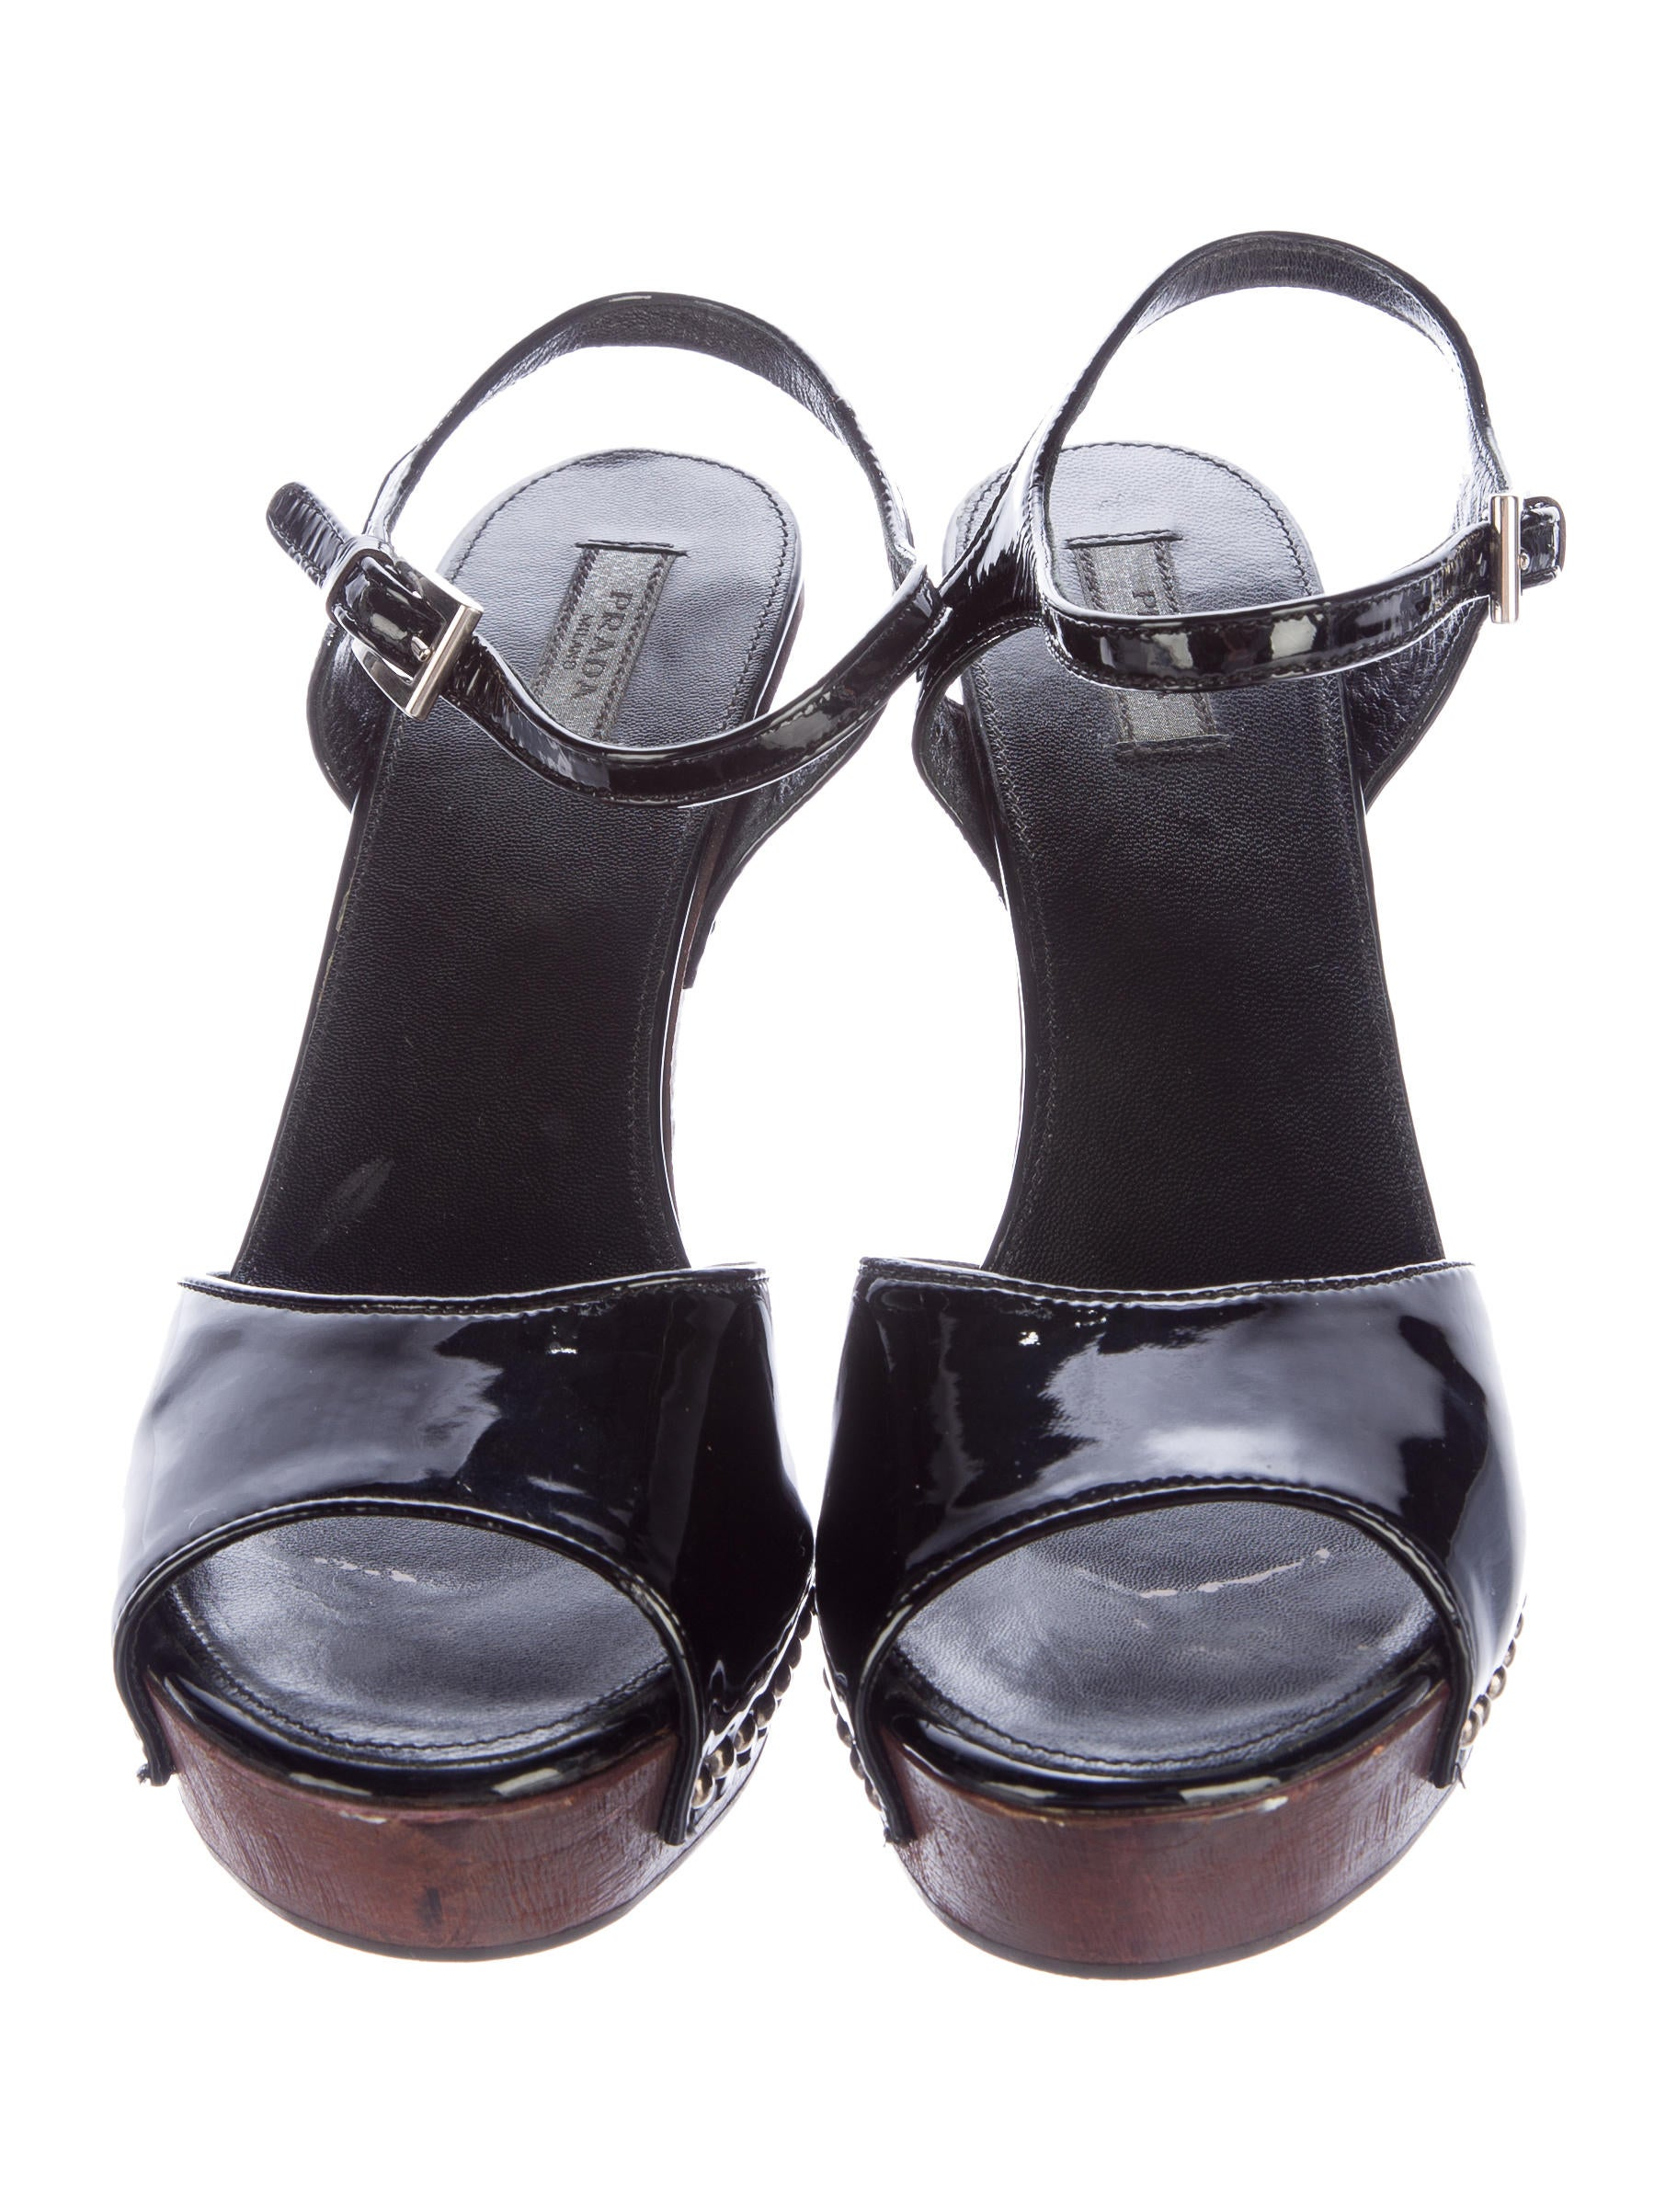 Patent Leather Womens Wedge Heels with FREE Shipping & Exchanges, and a % price guarantee. Choose from a huge selection of Patent Leather Womens Wedge Heels styles.